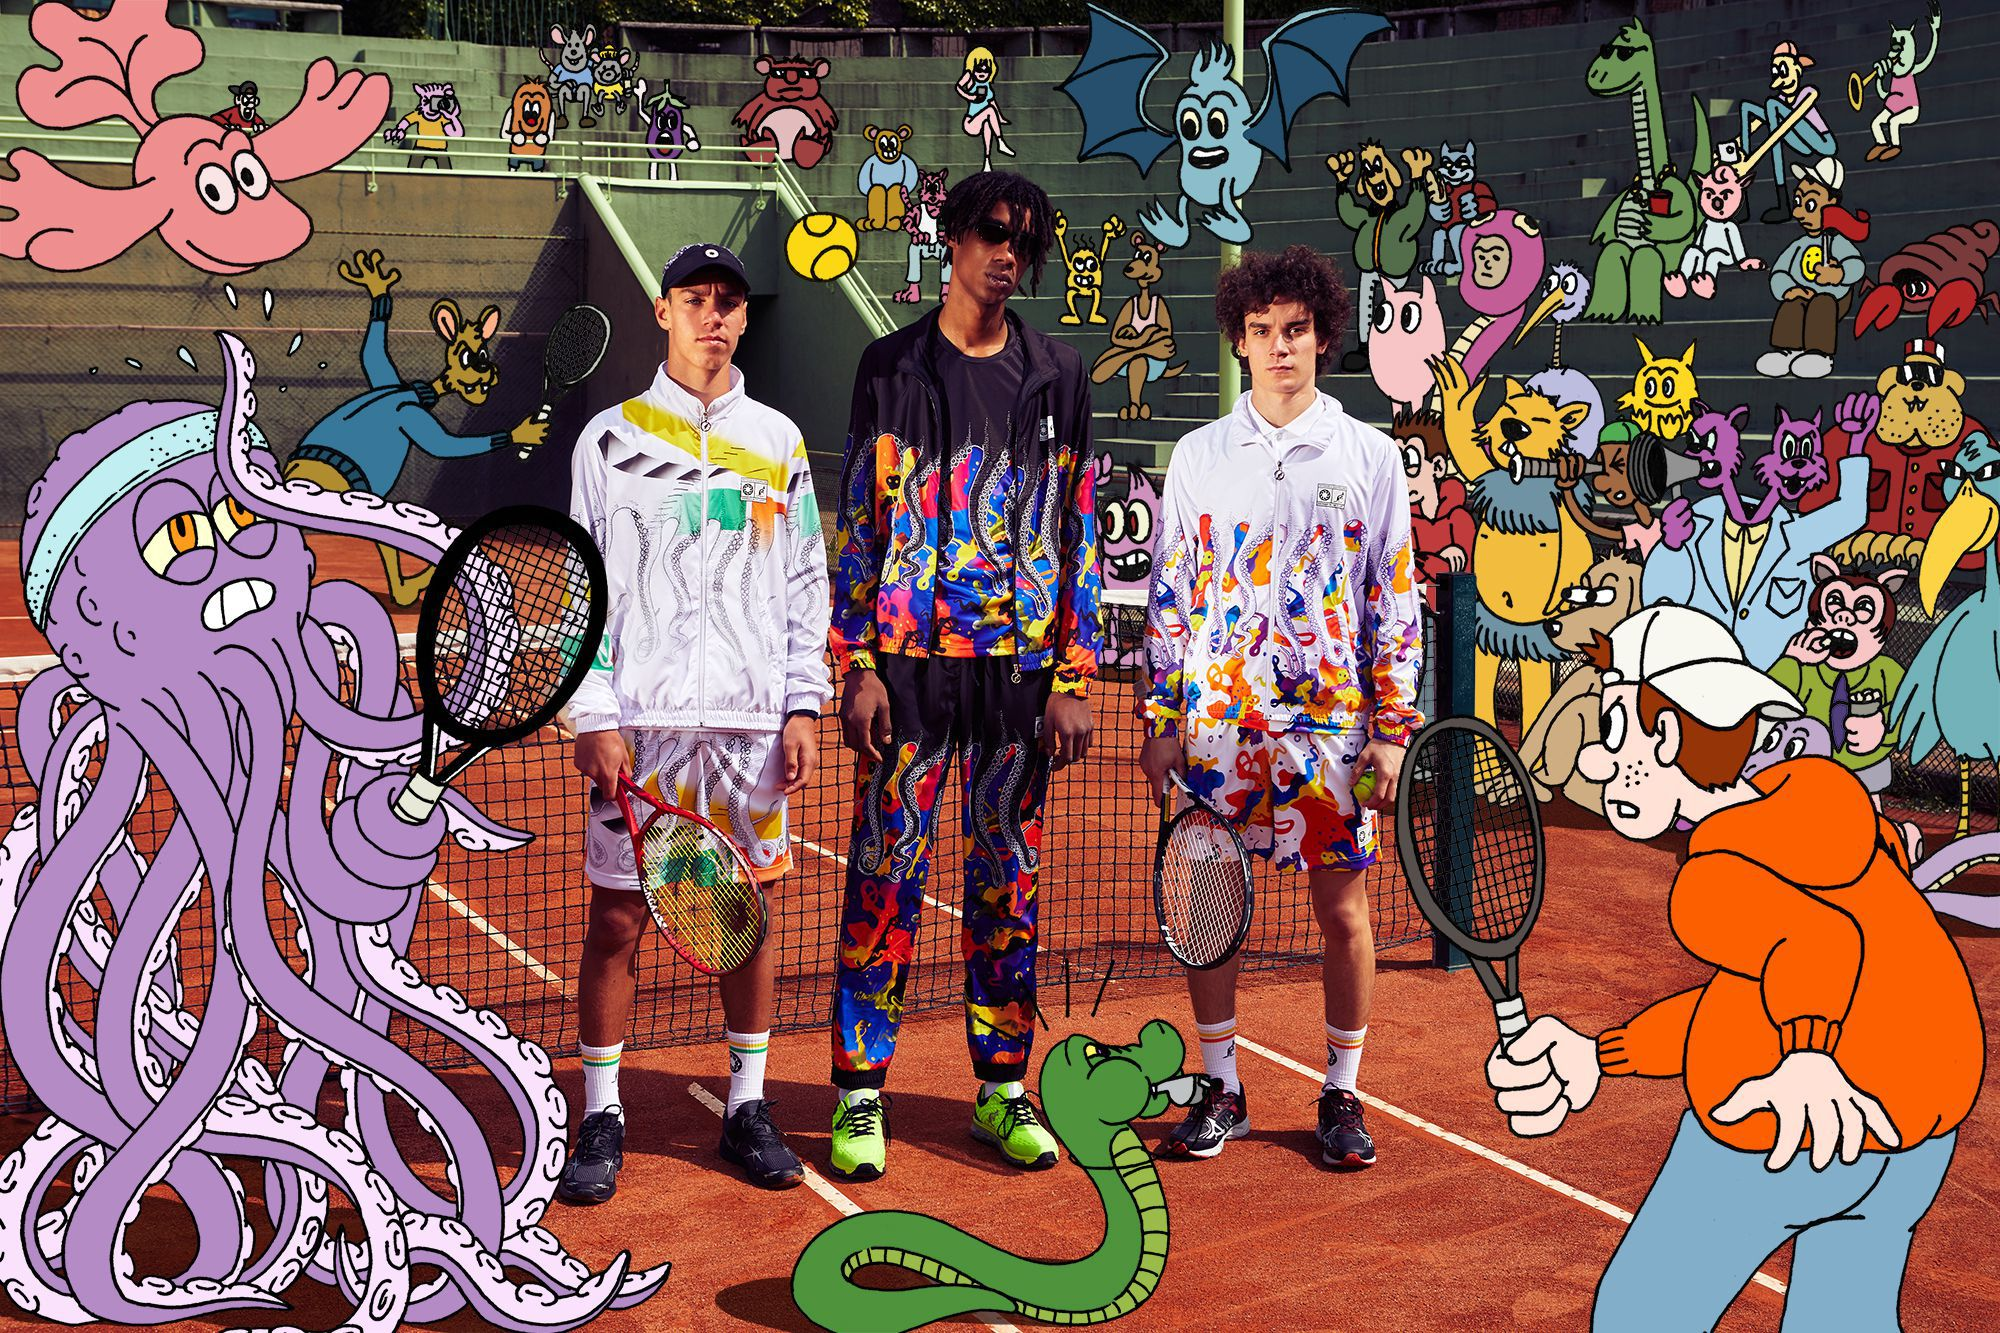 Octopus x Australian: Disorder on the Court! A Collaboration to show in a tennis match and at the Tennis Club